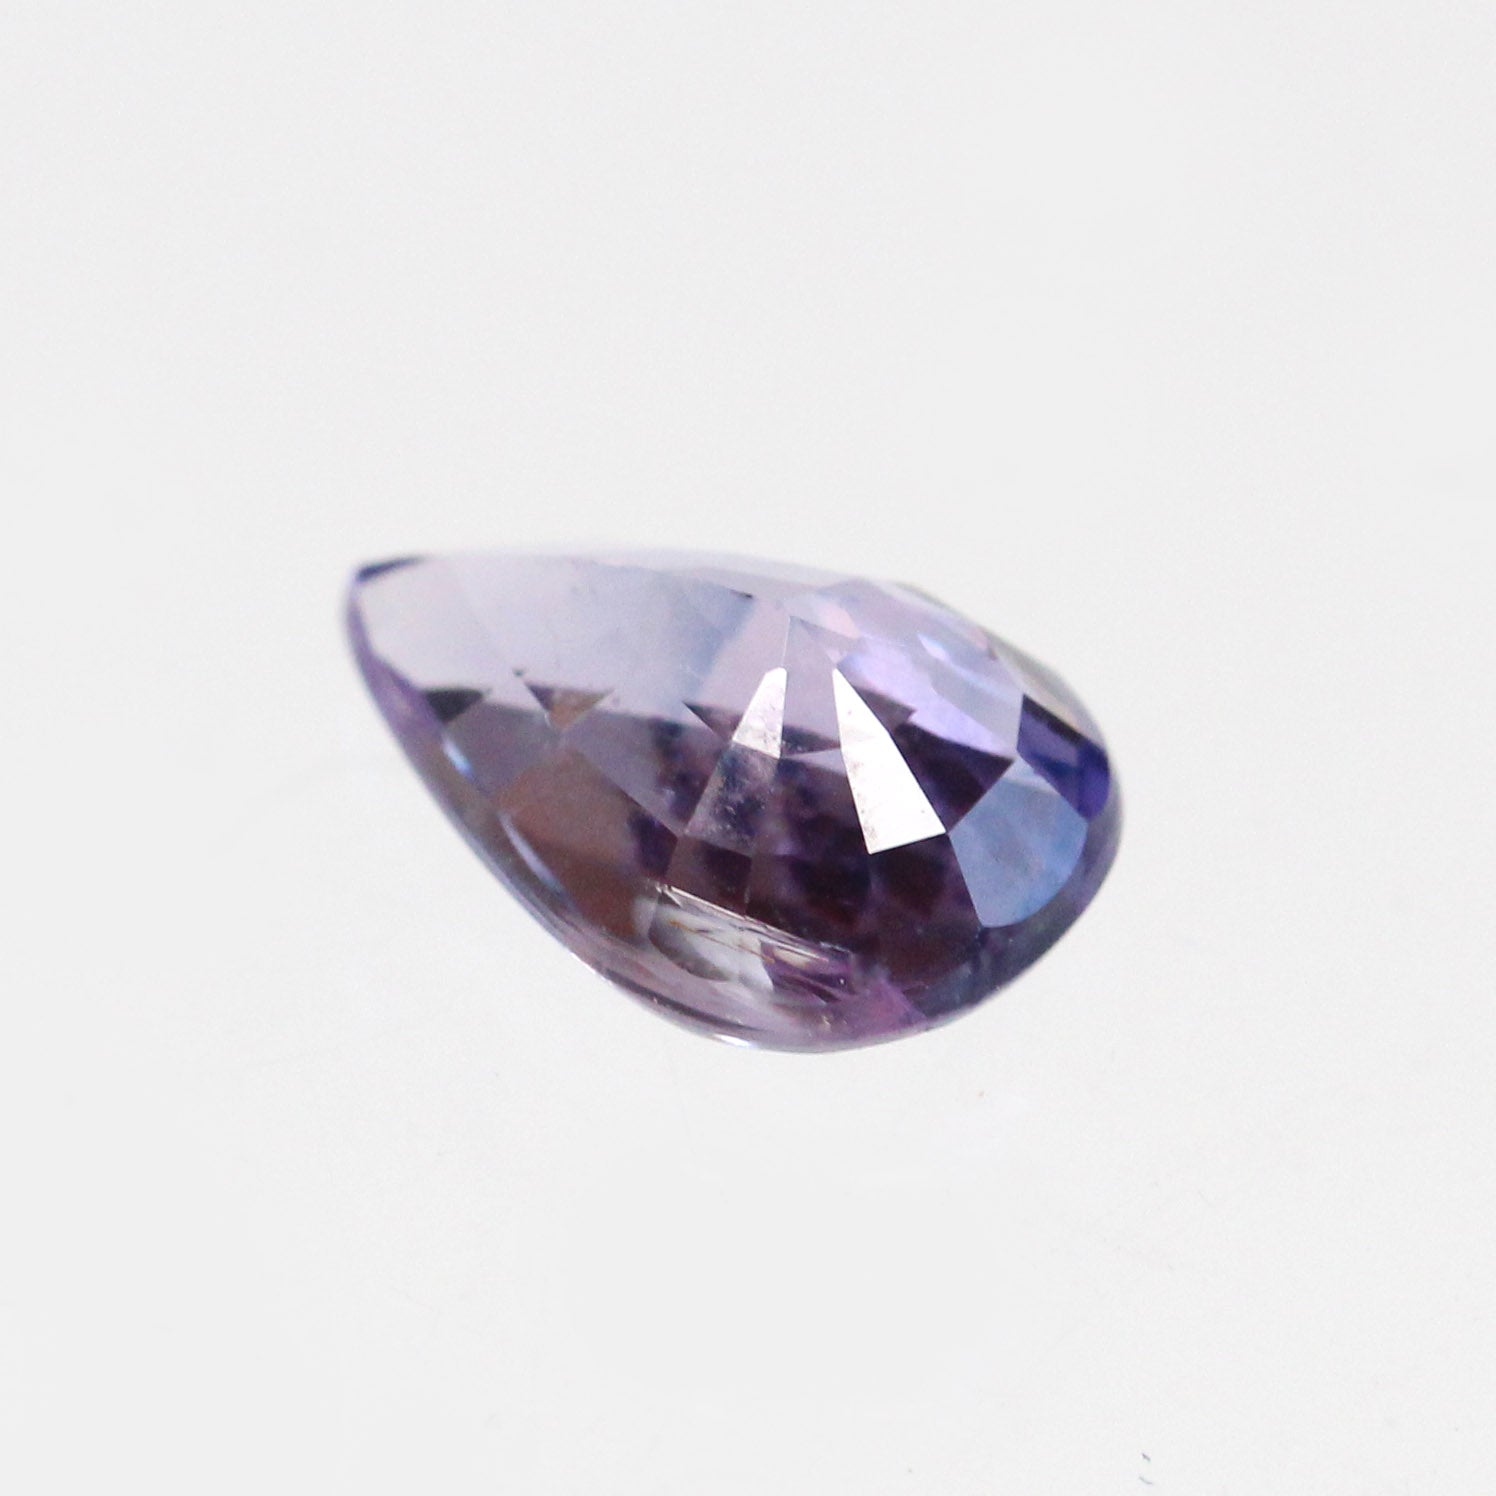 1.12 ct Pear Purple Sapphire for Custom Work - Inventory Code S112